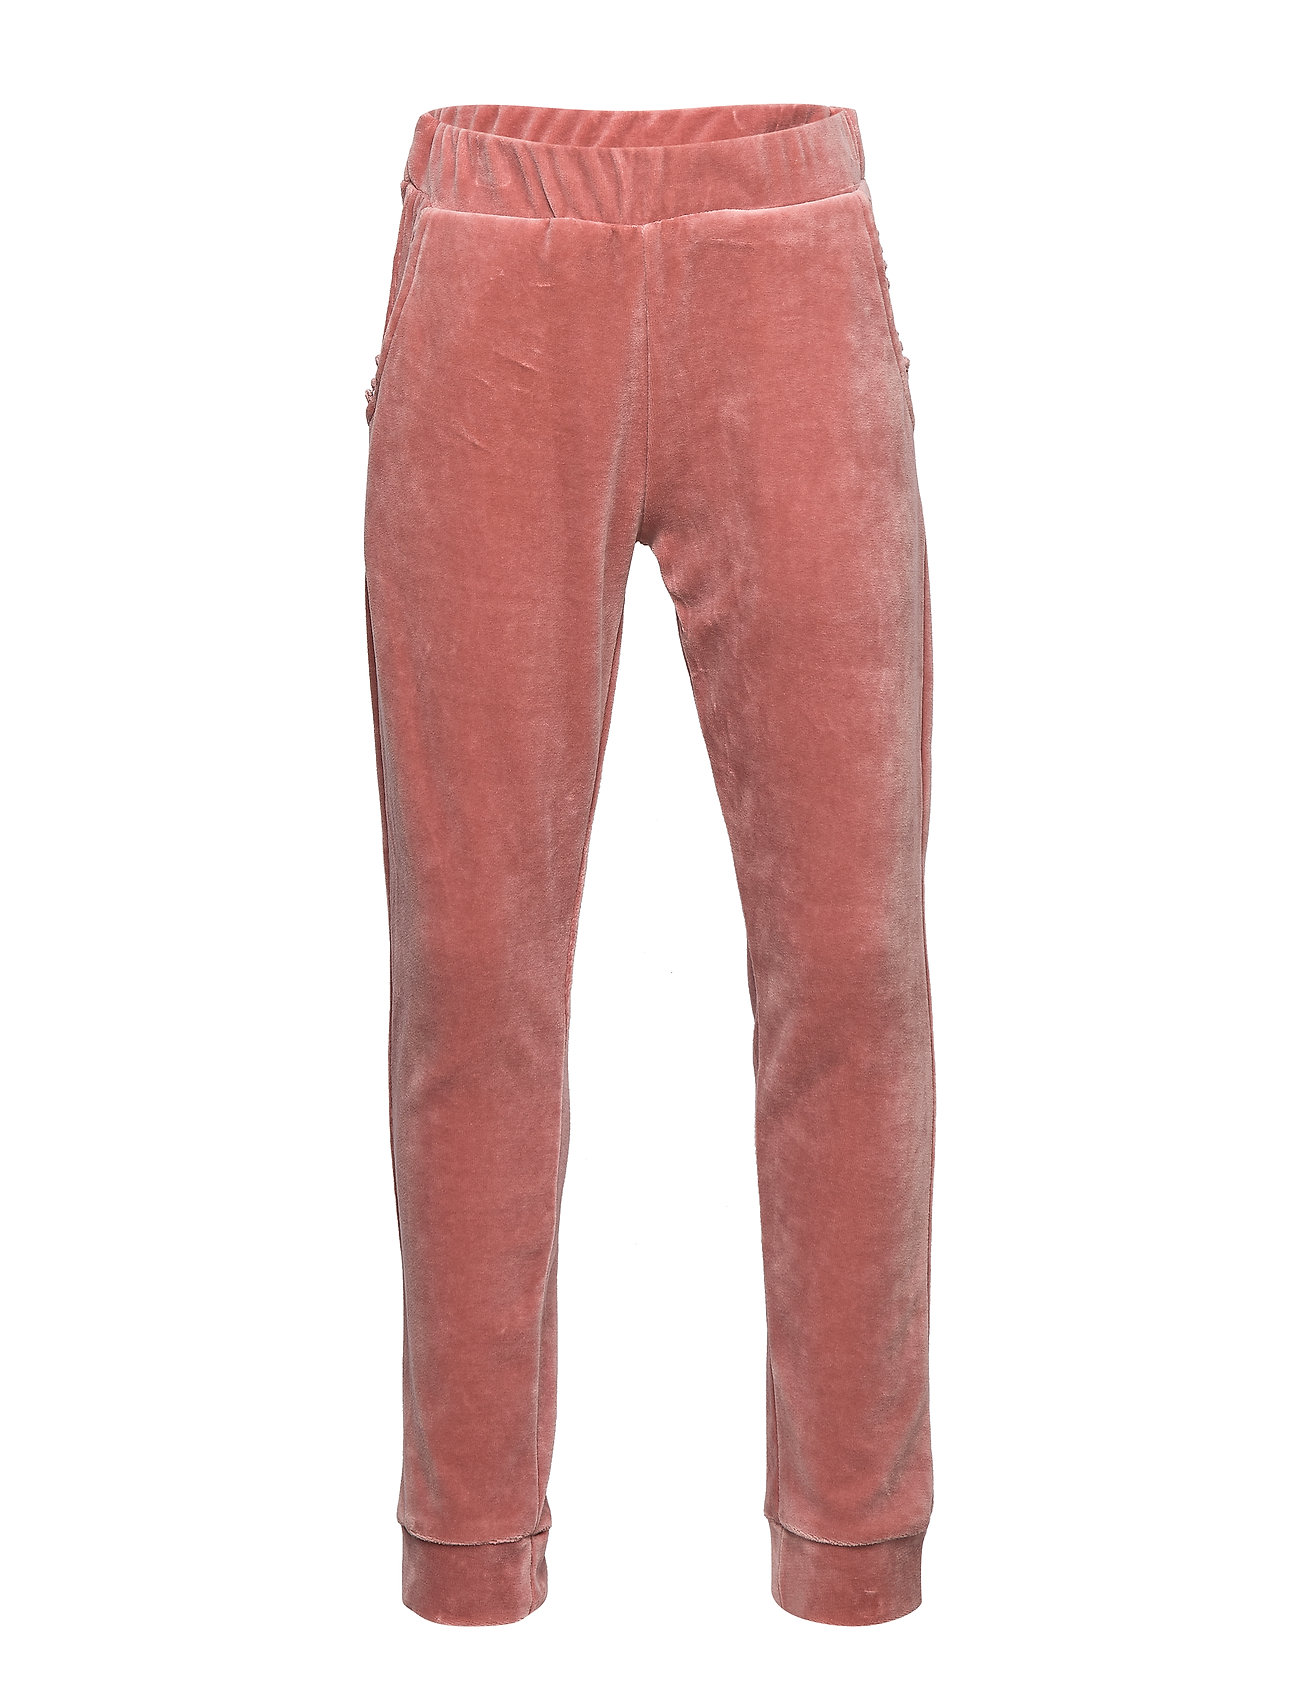 Noa Noa Miniature Trousers - OLD ROSE